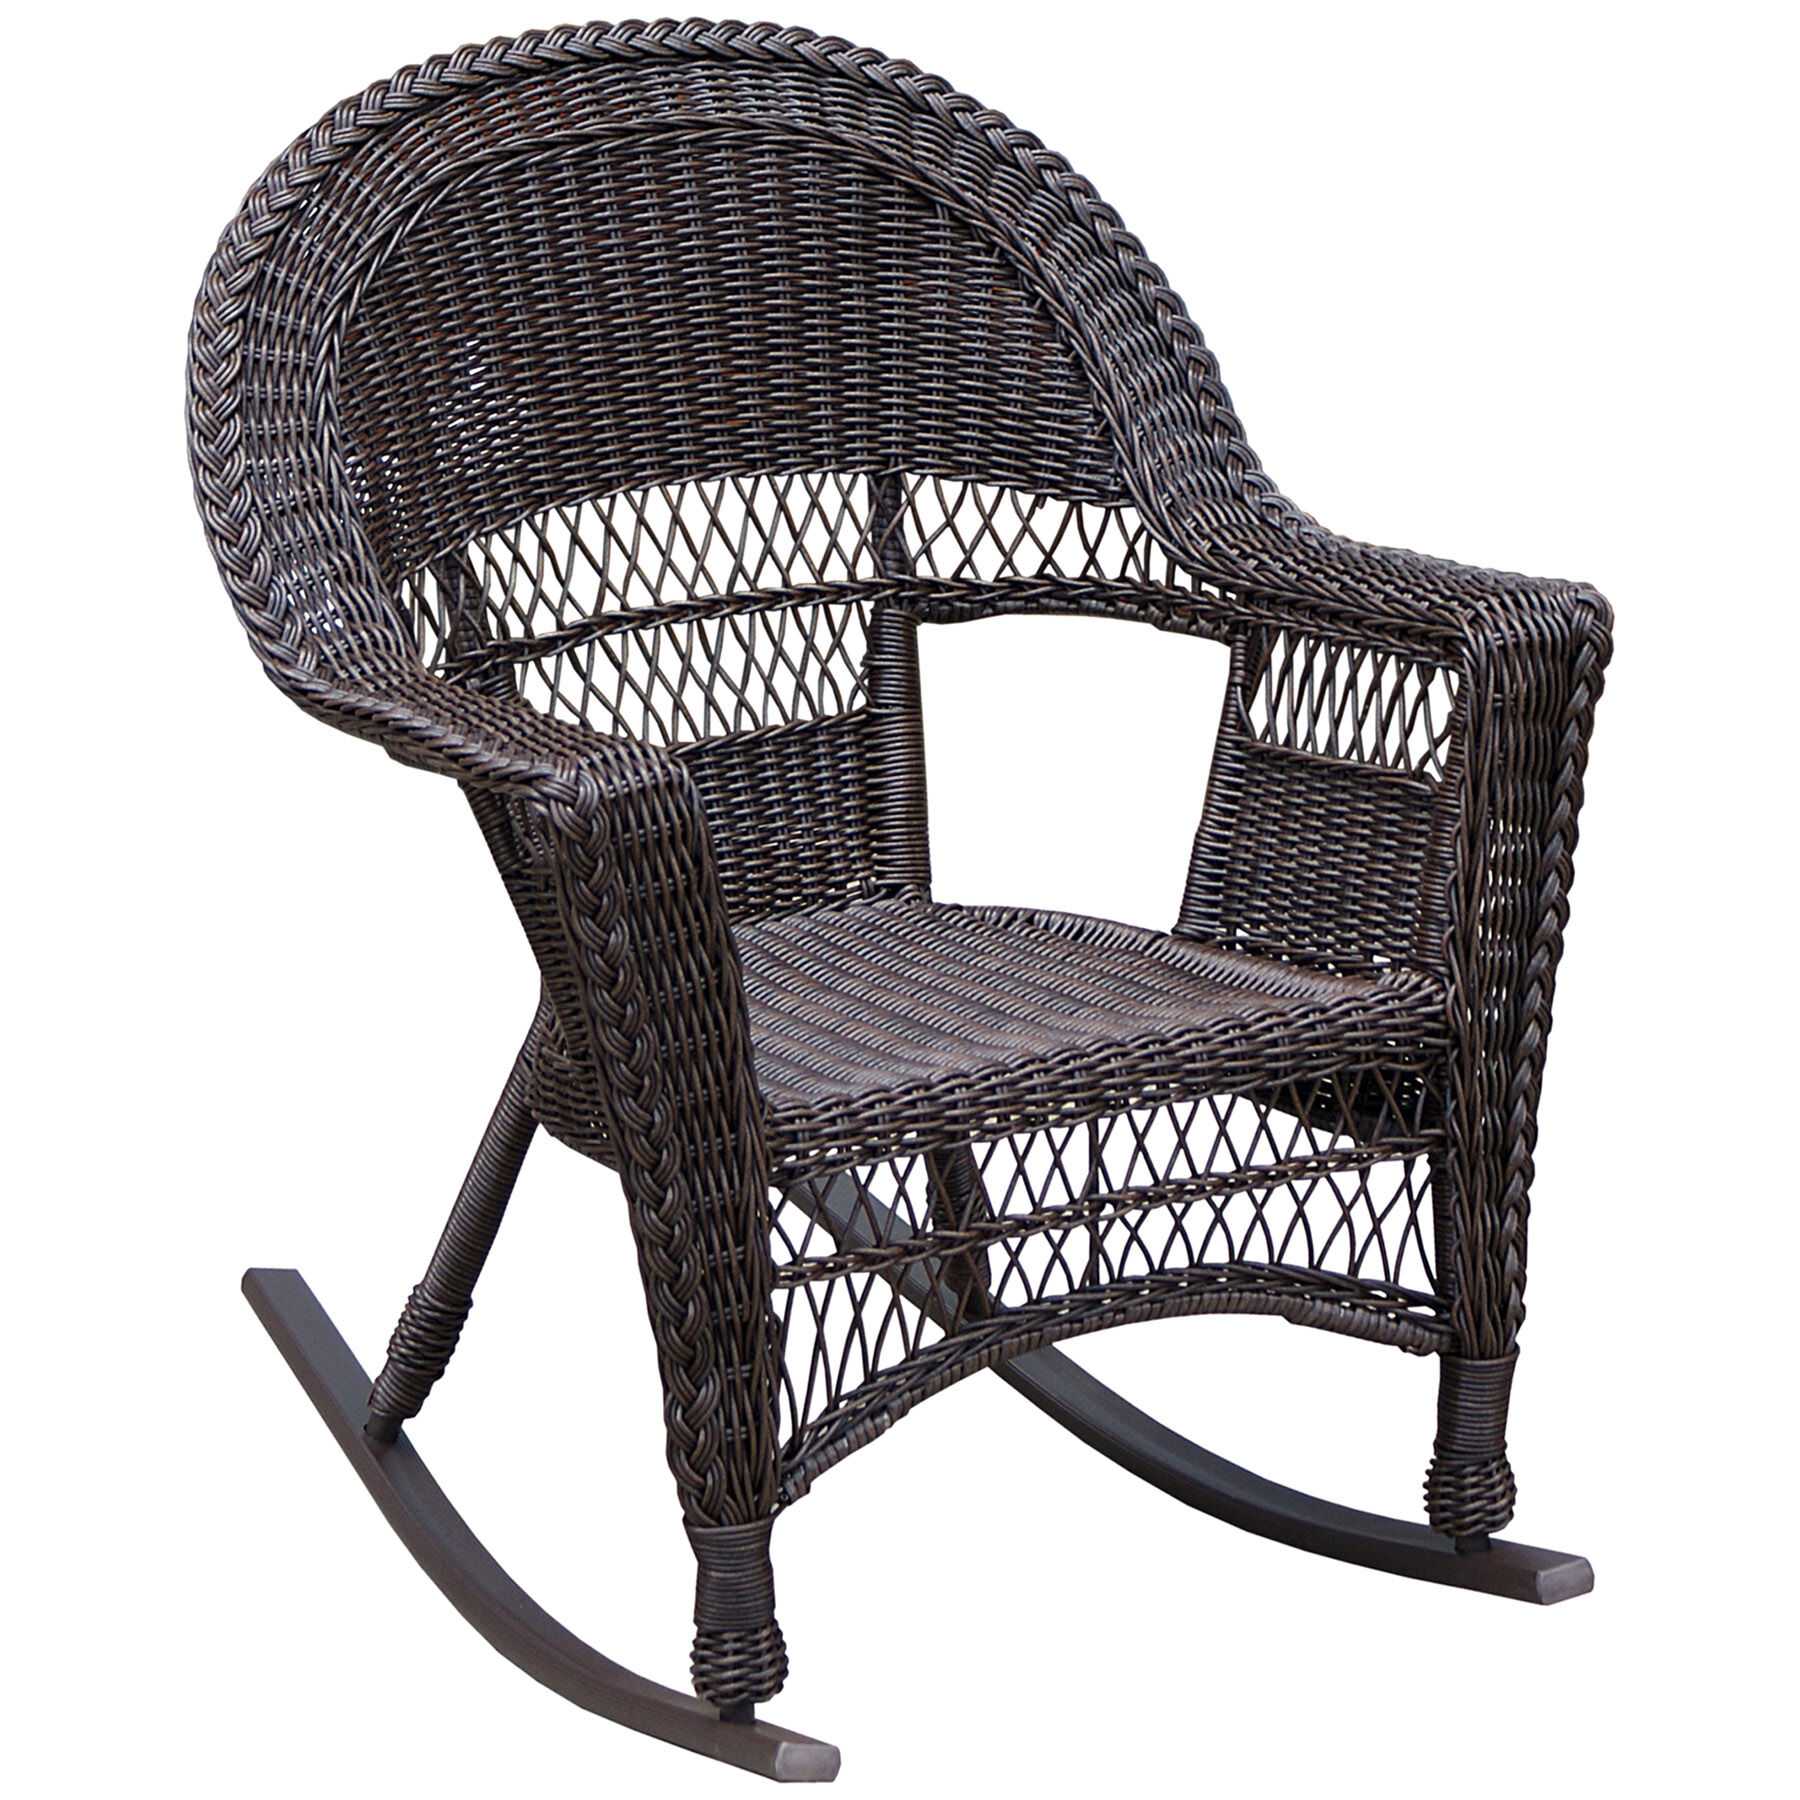 Wicker Rocking Chair Wicker Rocking Chair Dark Brown At Home